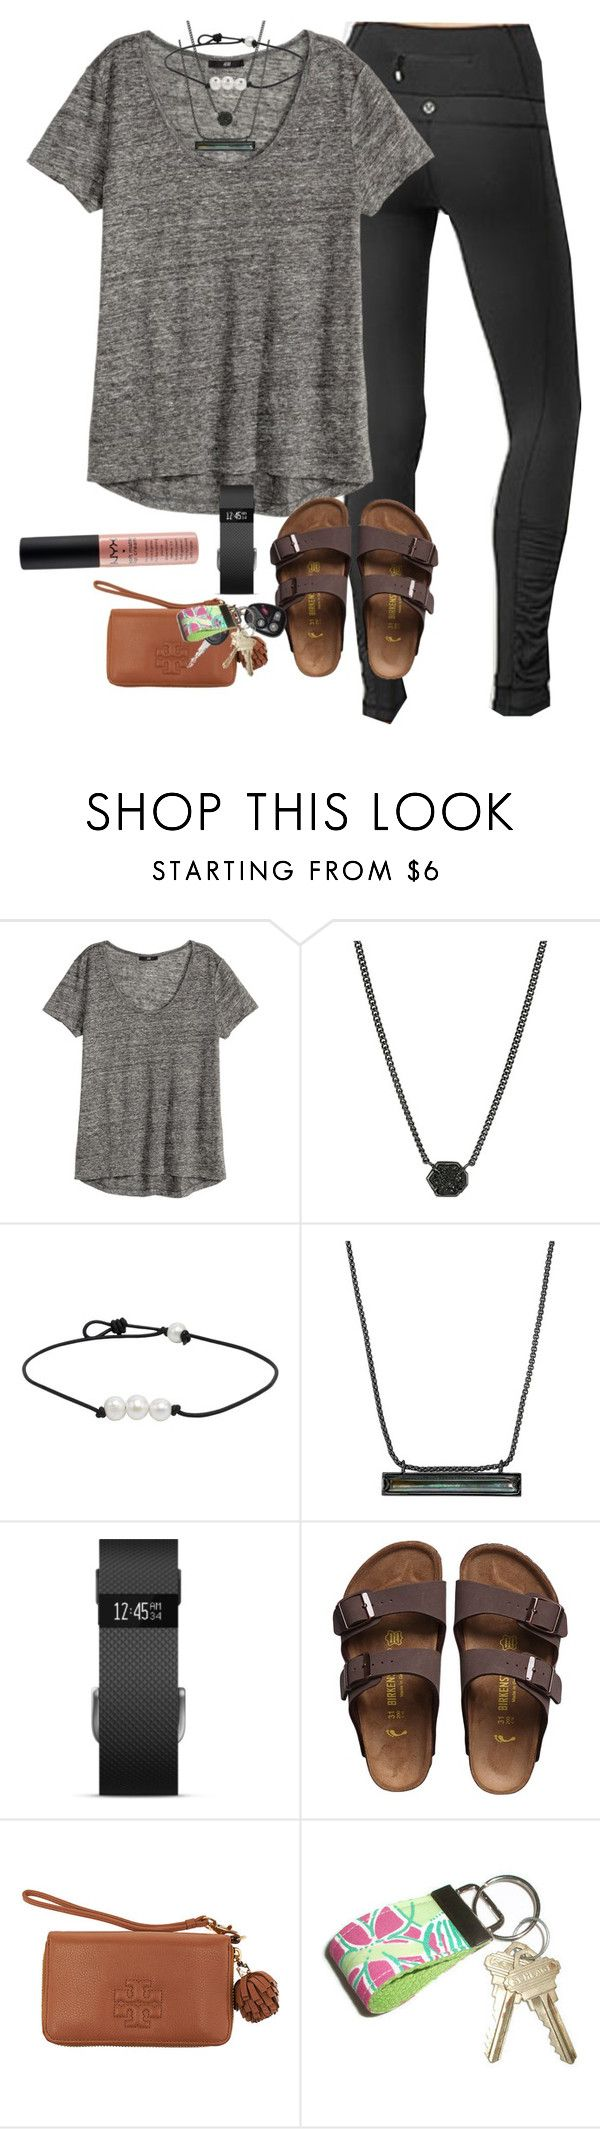 """""""OOY- outfit of yesterday"""" by prep-lover1 ❤ liked on Polyvore featuring lululemon, Kendra Scott, Fitbit, Birkenstock, Tory Burch, Lilly Pulitzer and NYX"""